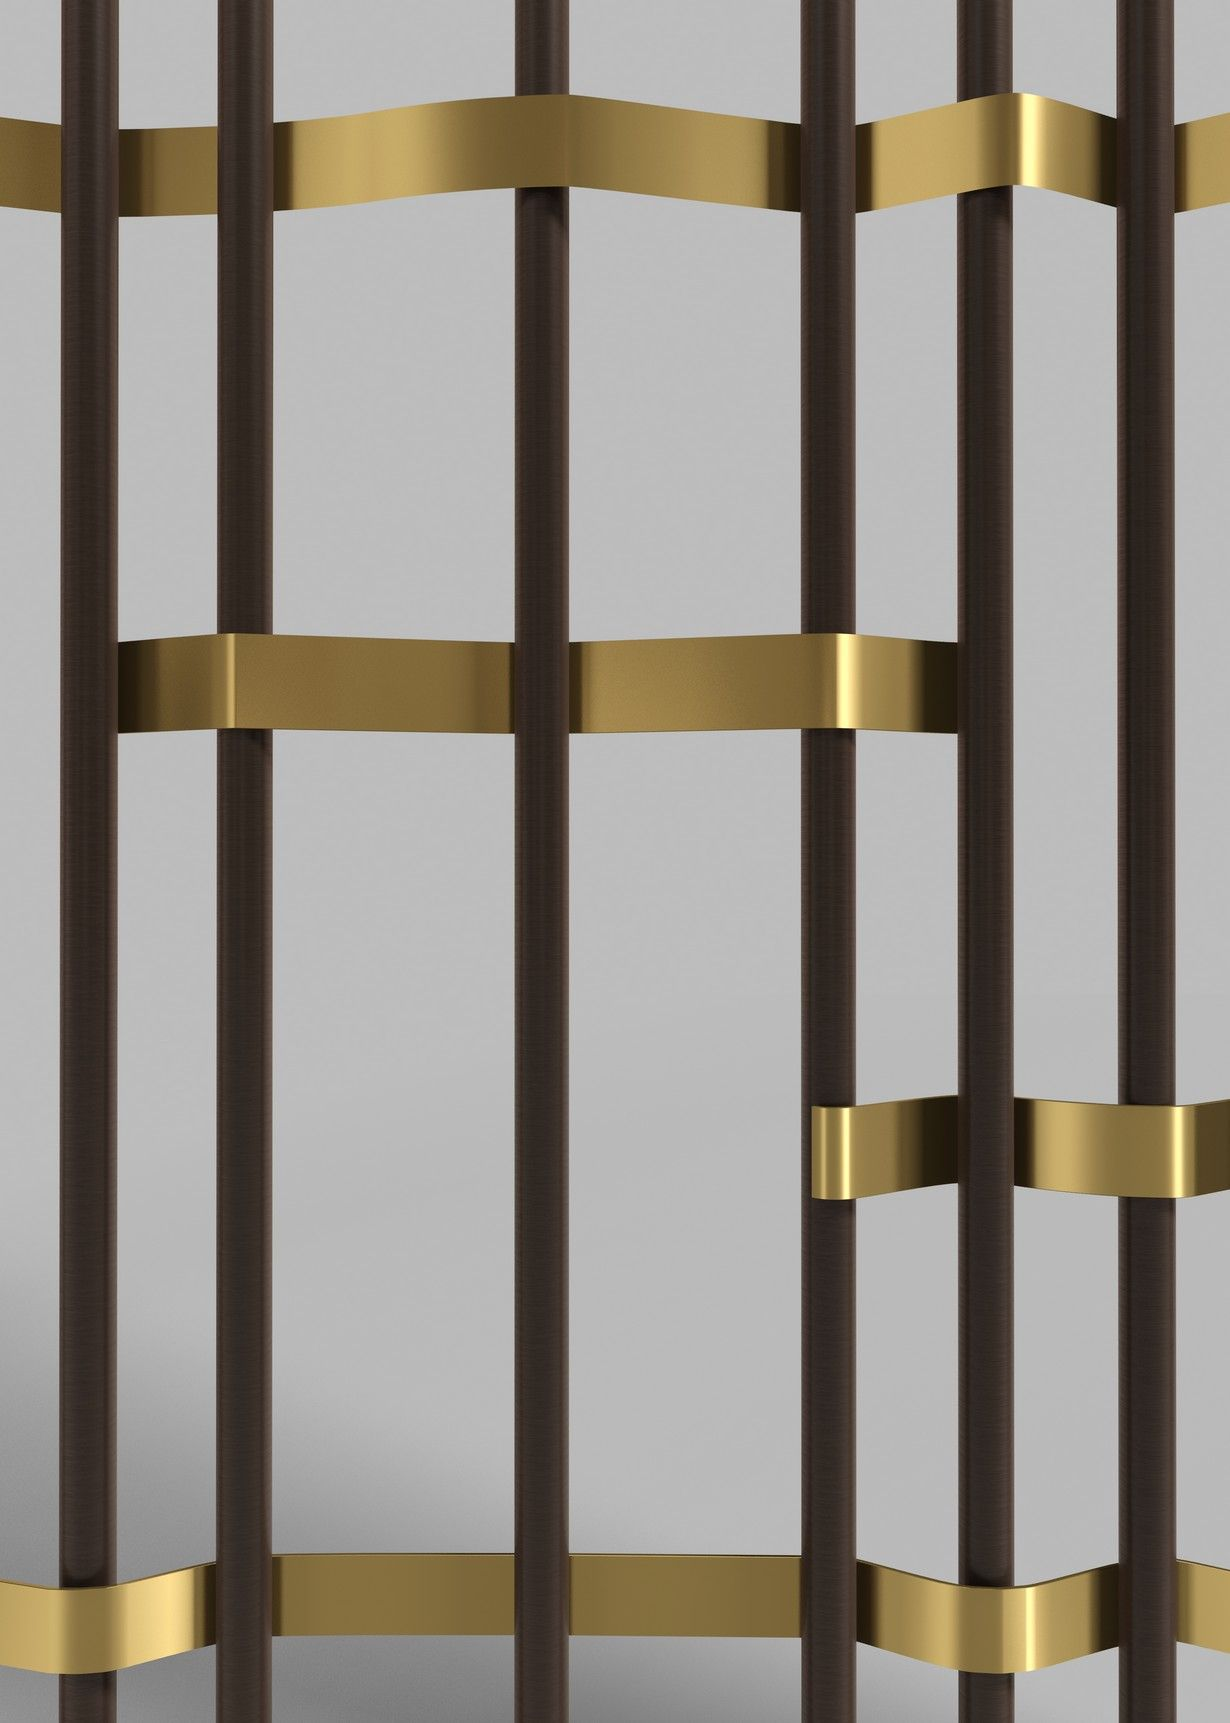 Beautiful Railing Detail In Bronze And Brass Details